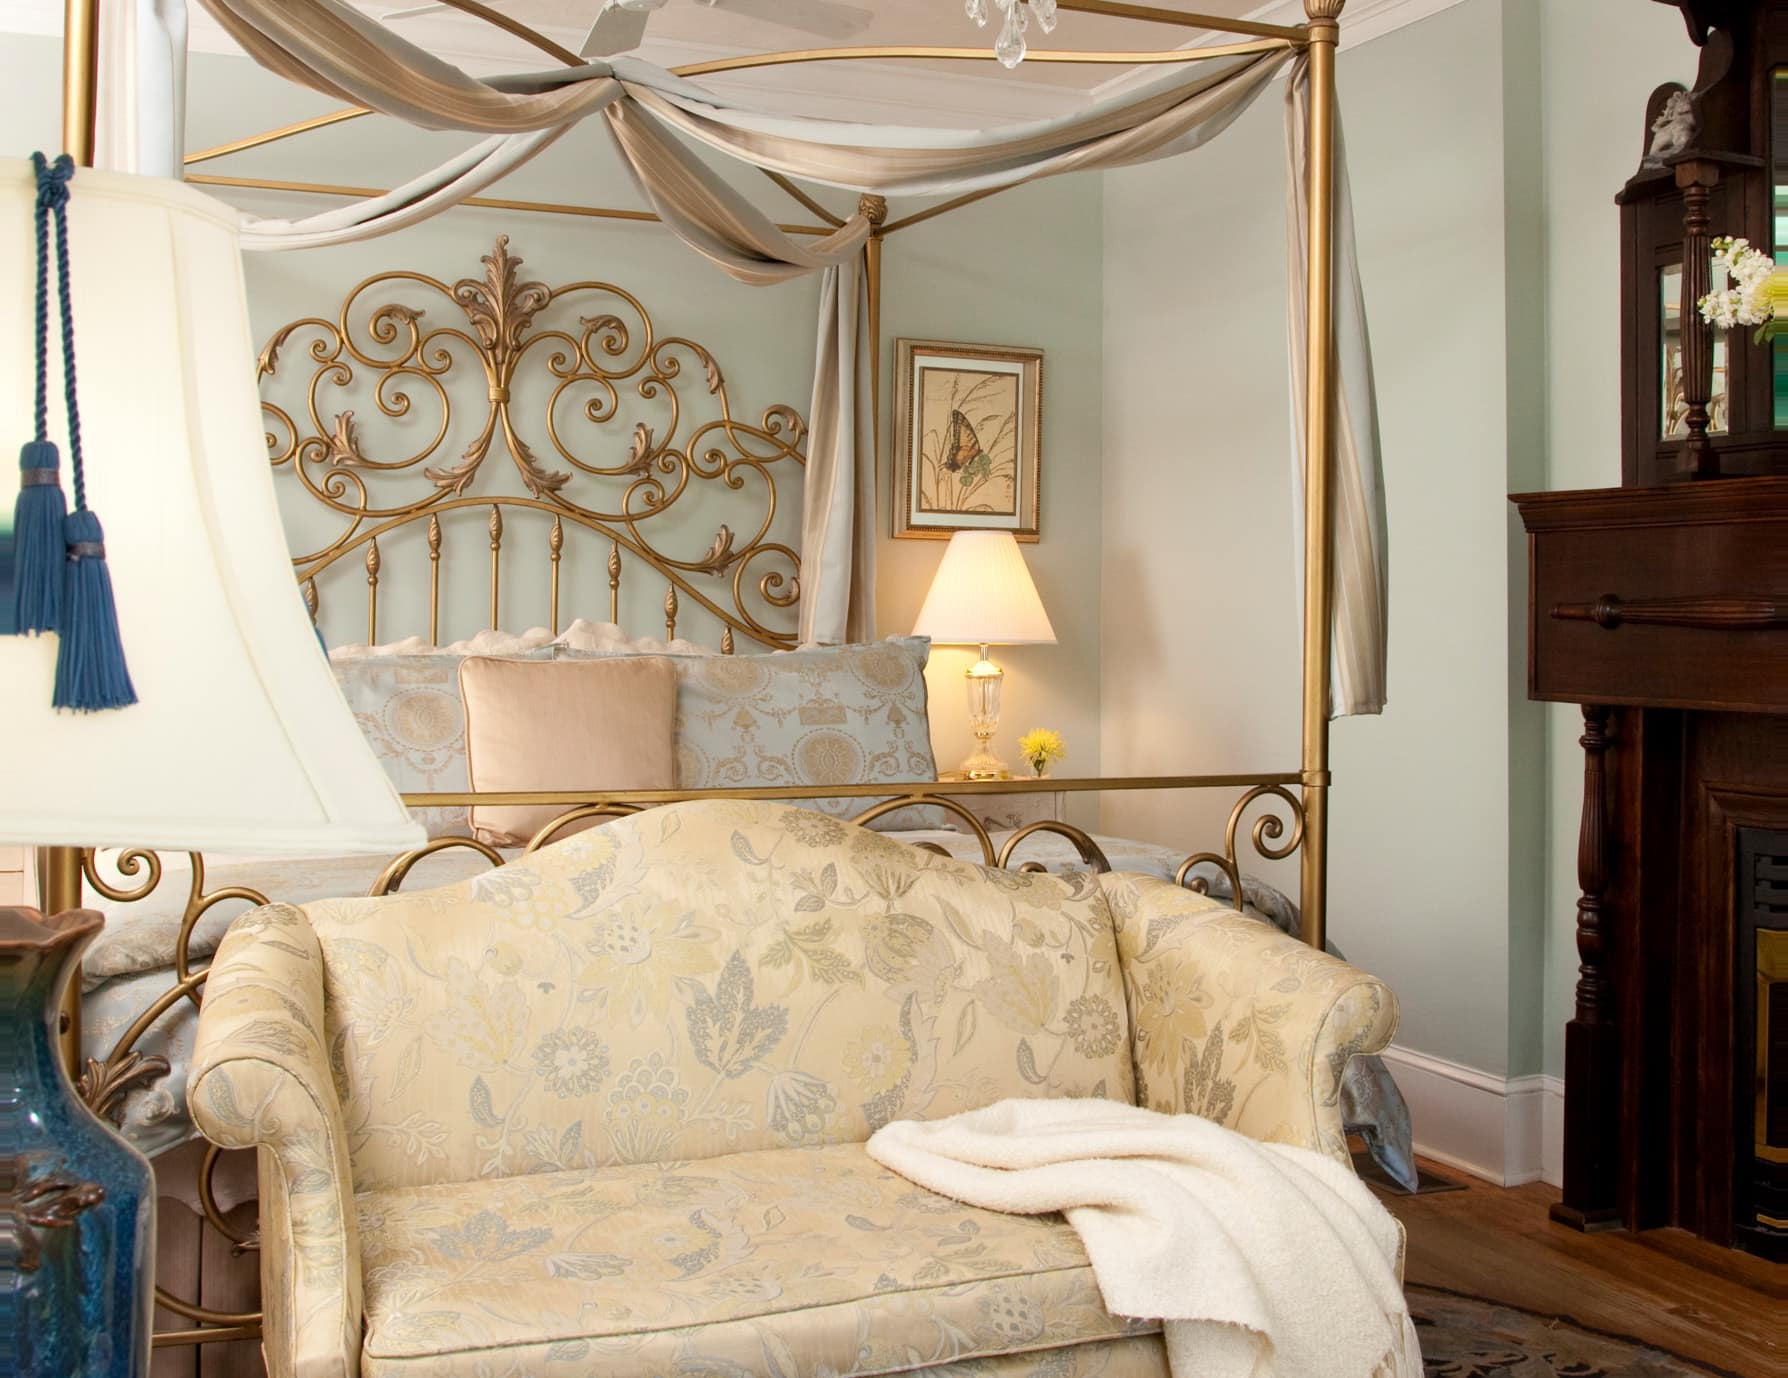 Accommodations in Manteo, NC Offer King Bed and 2 Person Couch